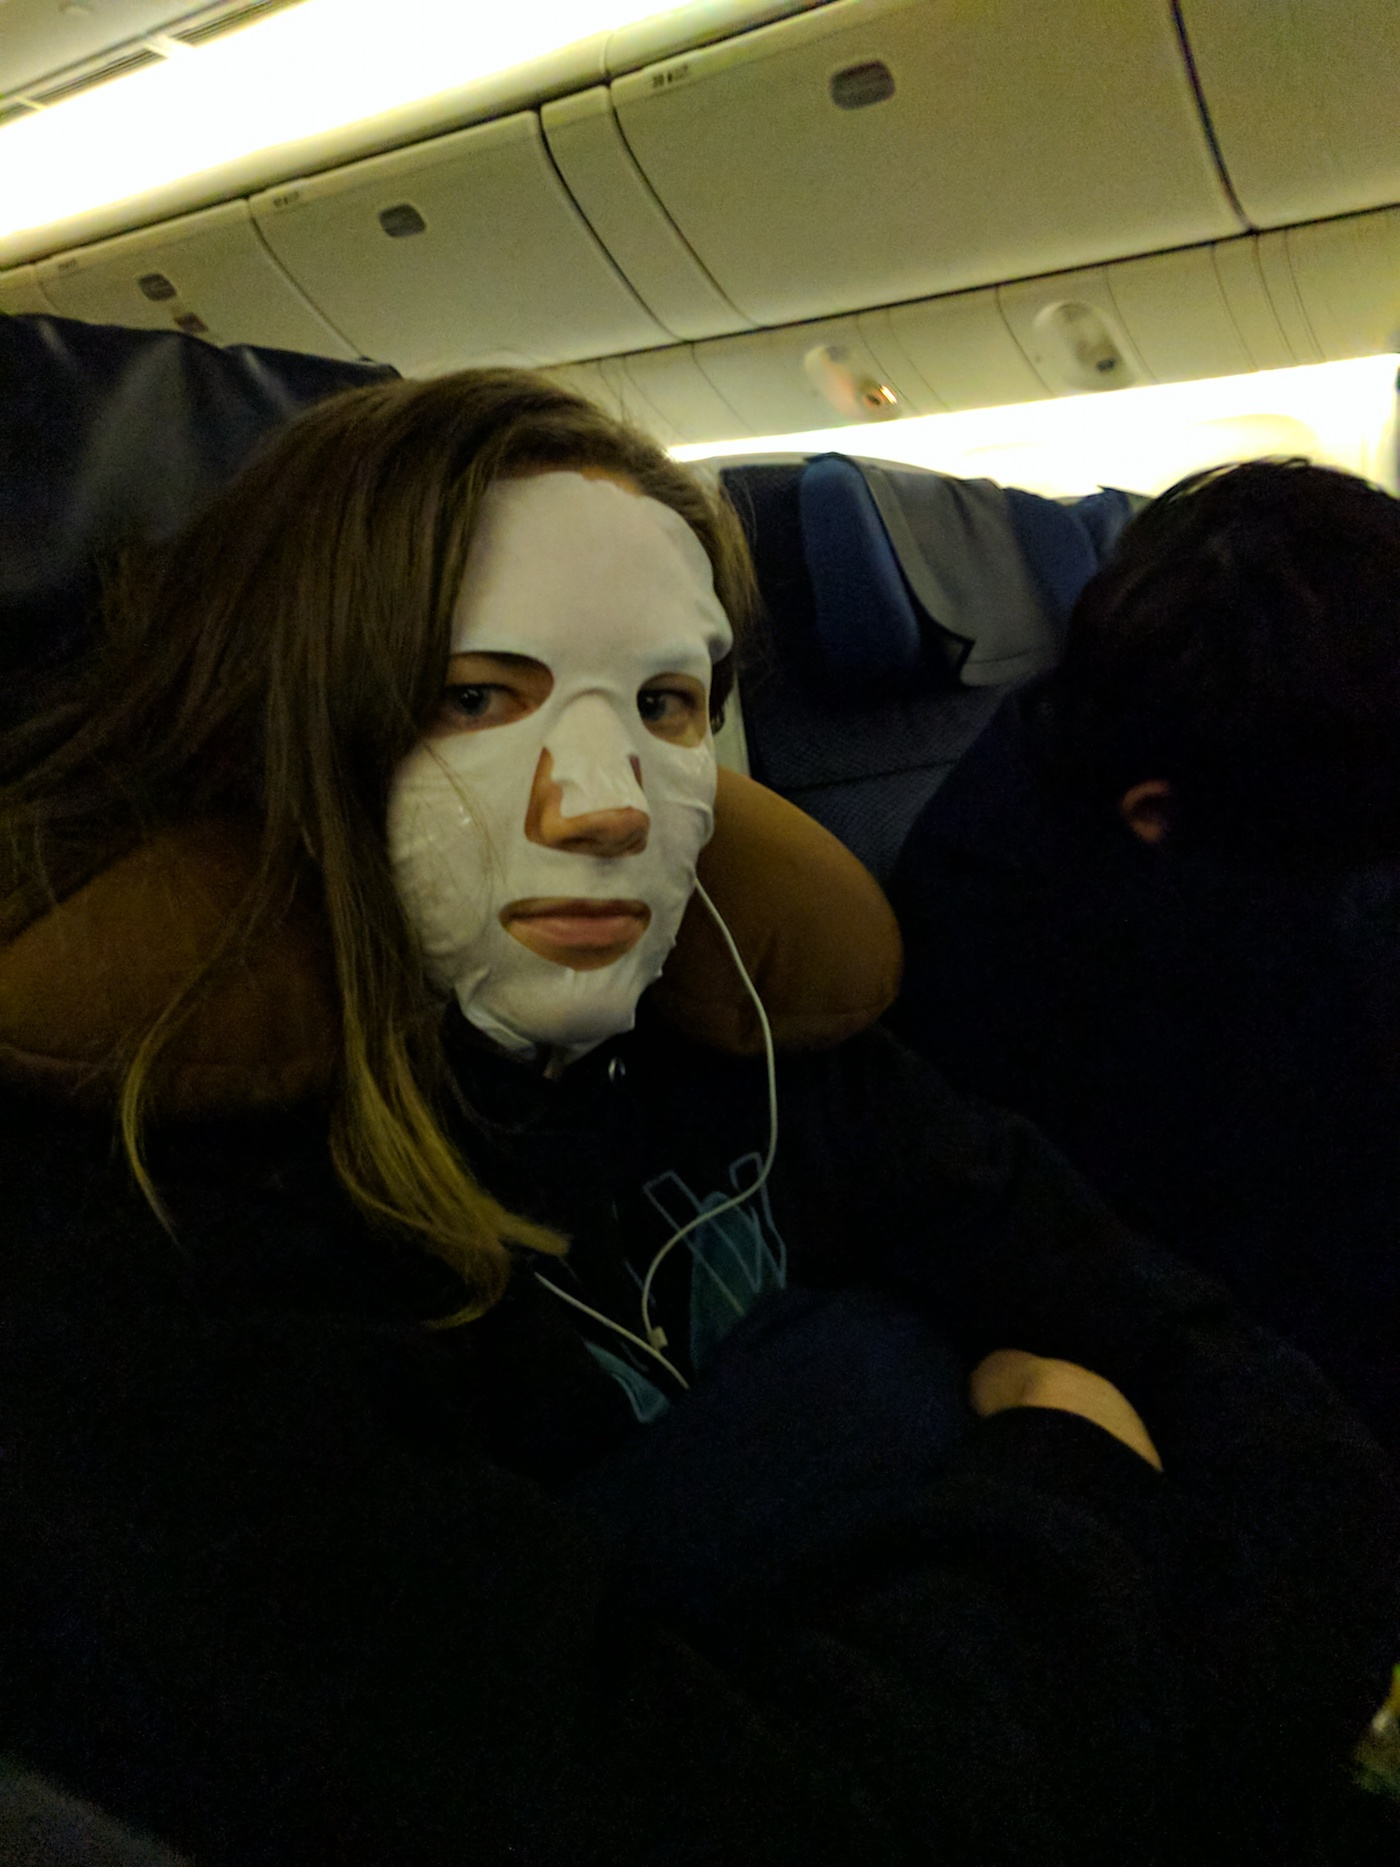 I'm going for most embarrassing person of the flight here.